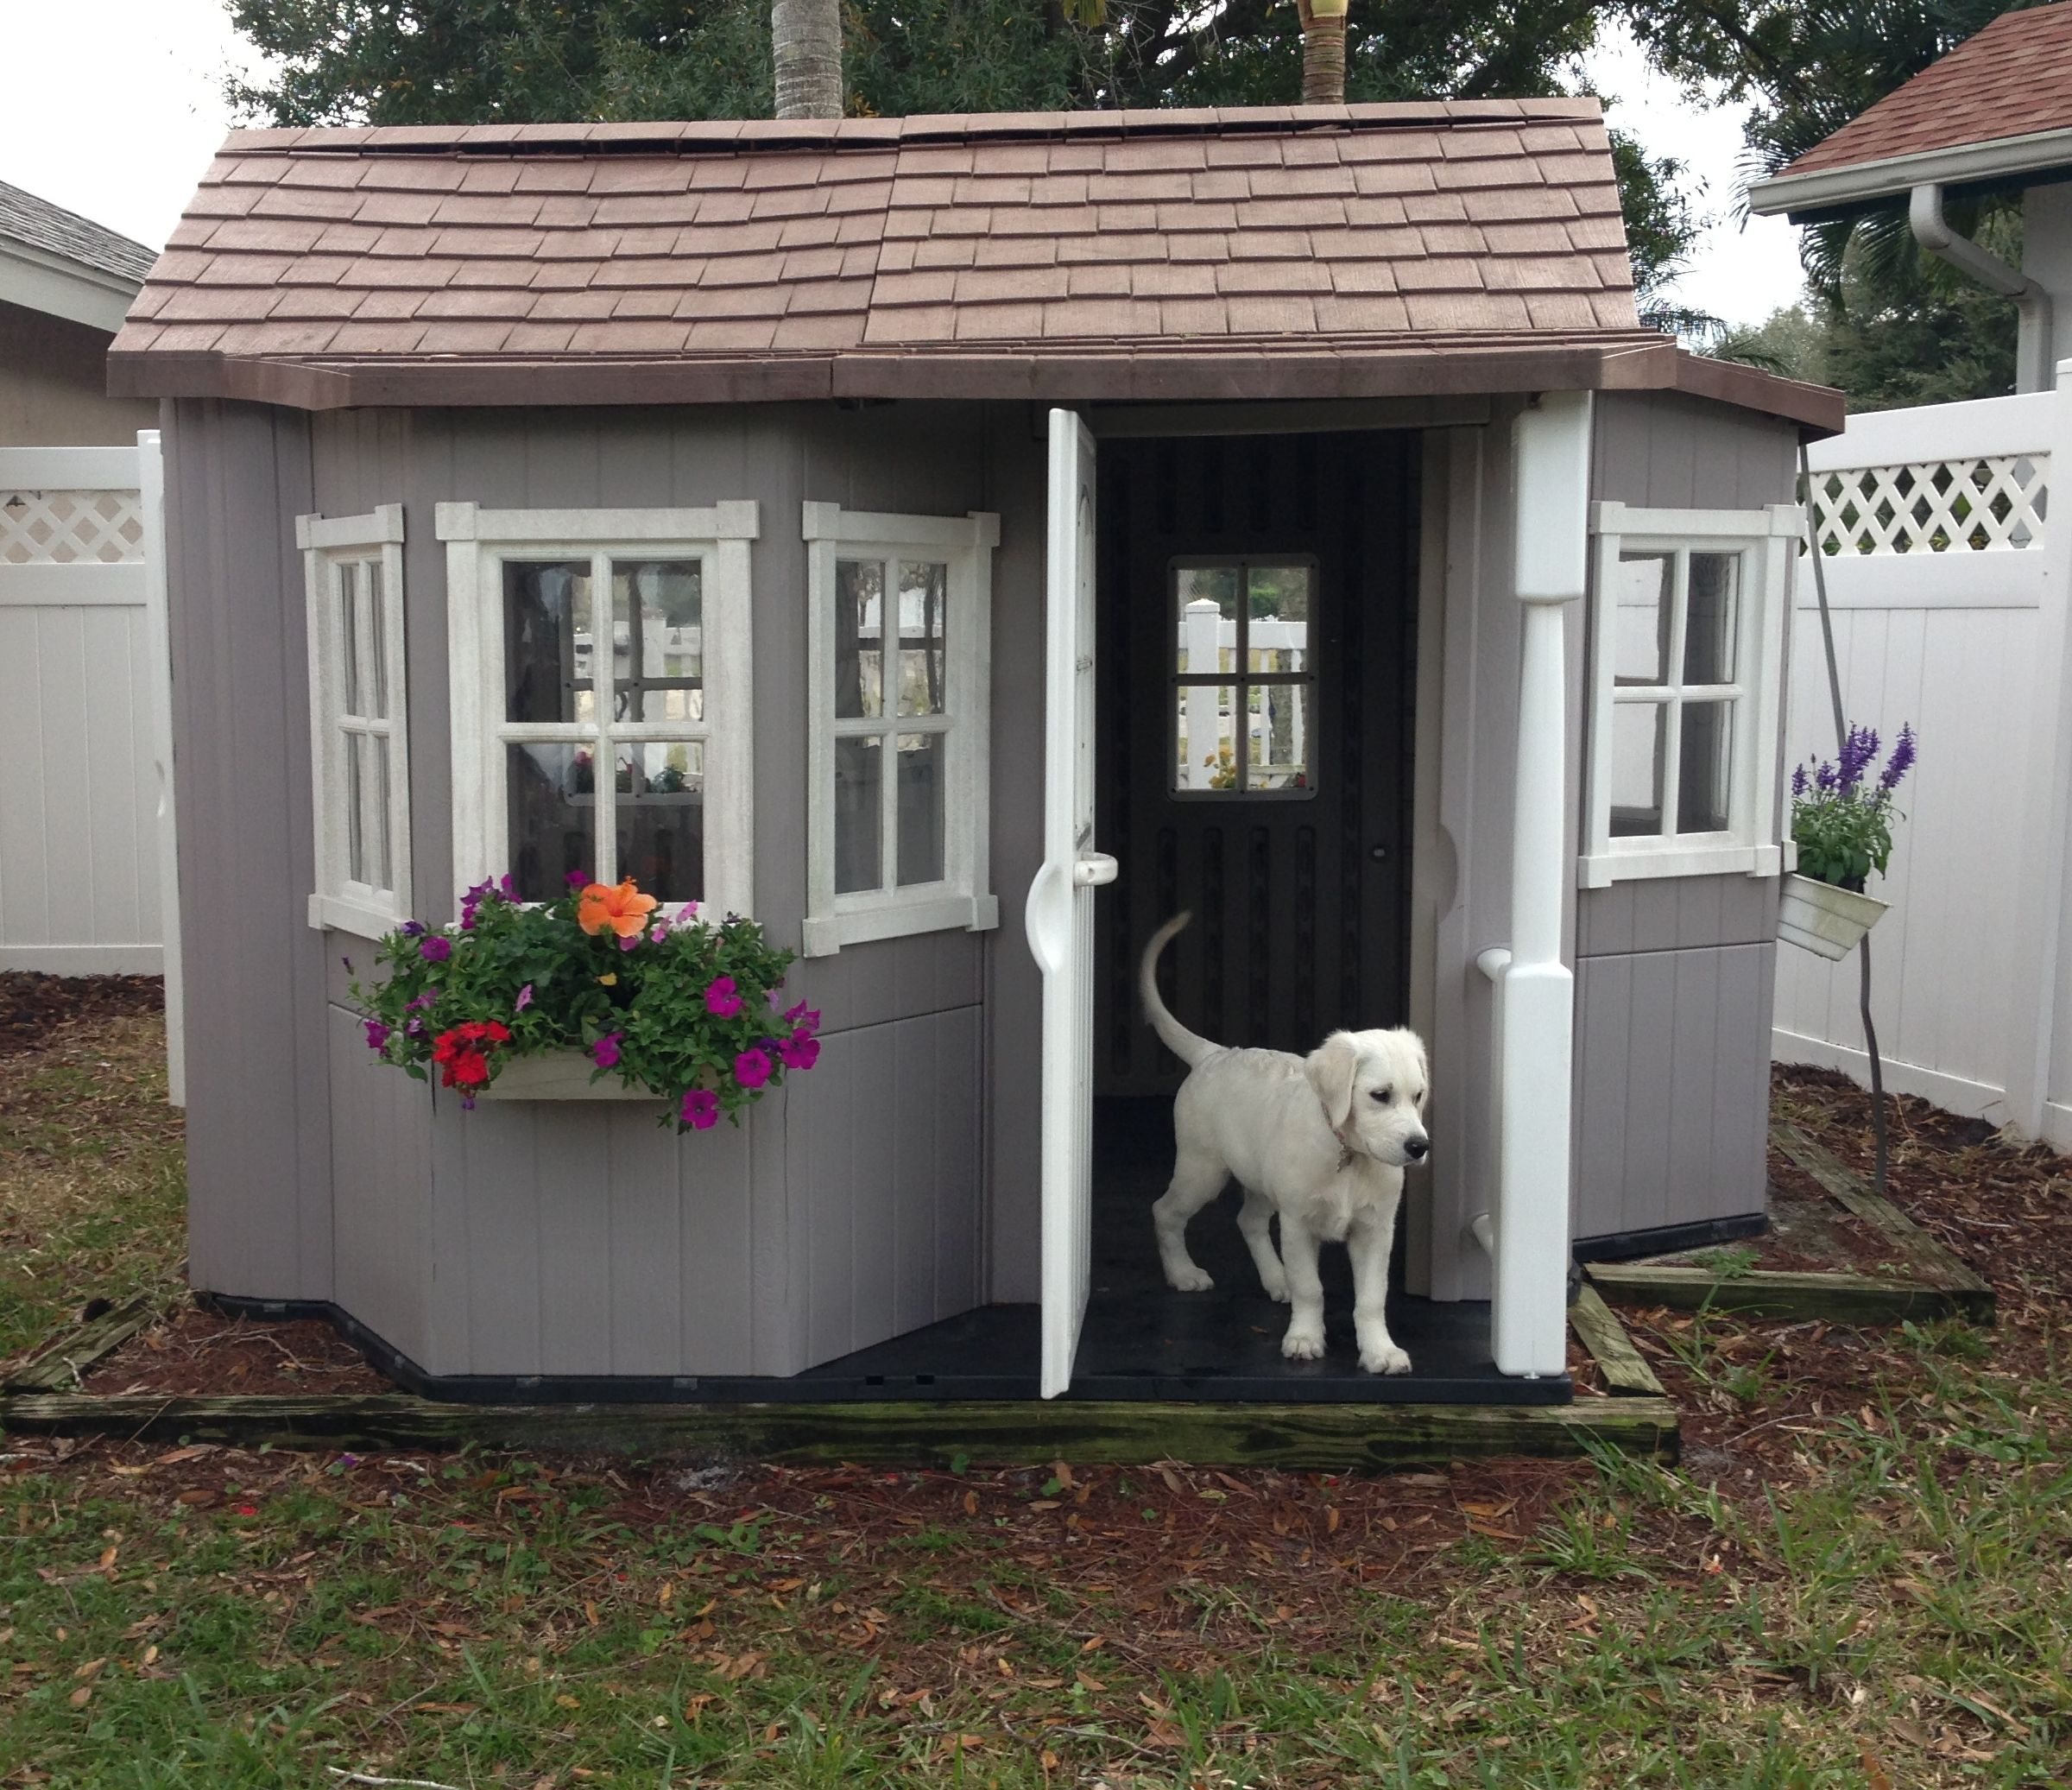 Cool Dog House Sampson S White Golden Retriever Just Checking Out